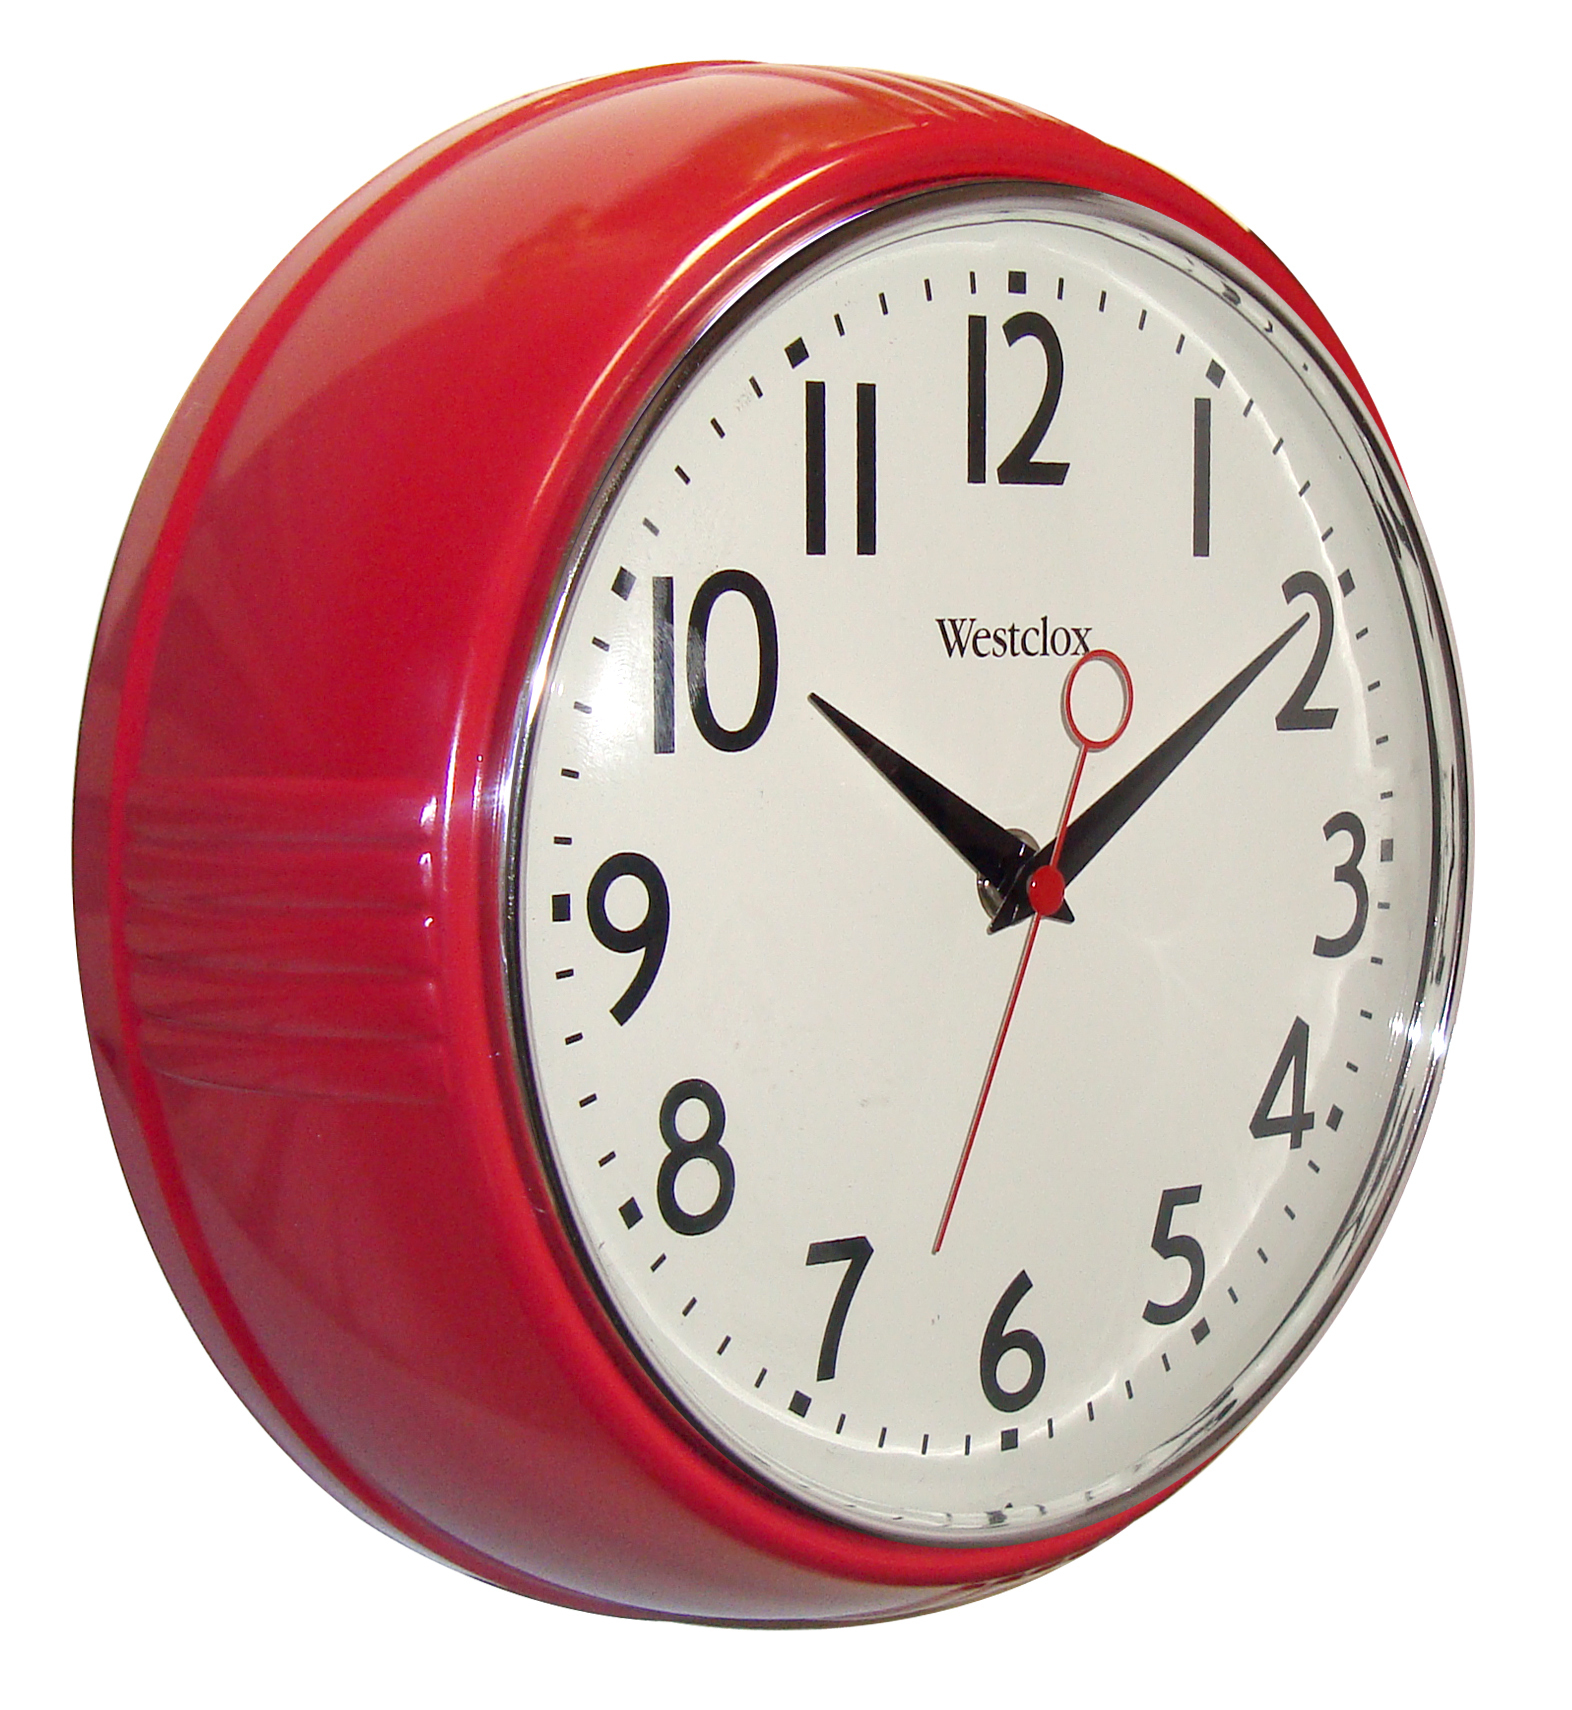 "Westclox 1950 Retro 9.5"" Extra Thick Round Wall Clock Red 32042R 32042R"